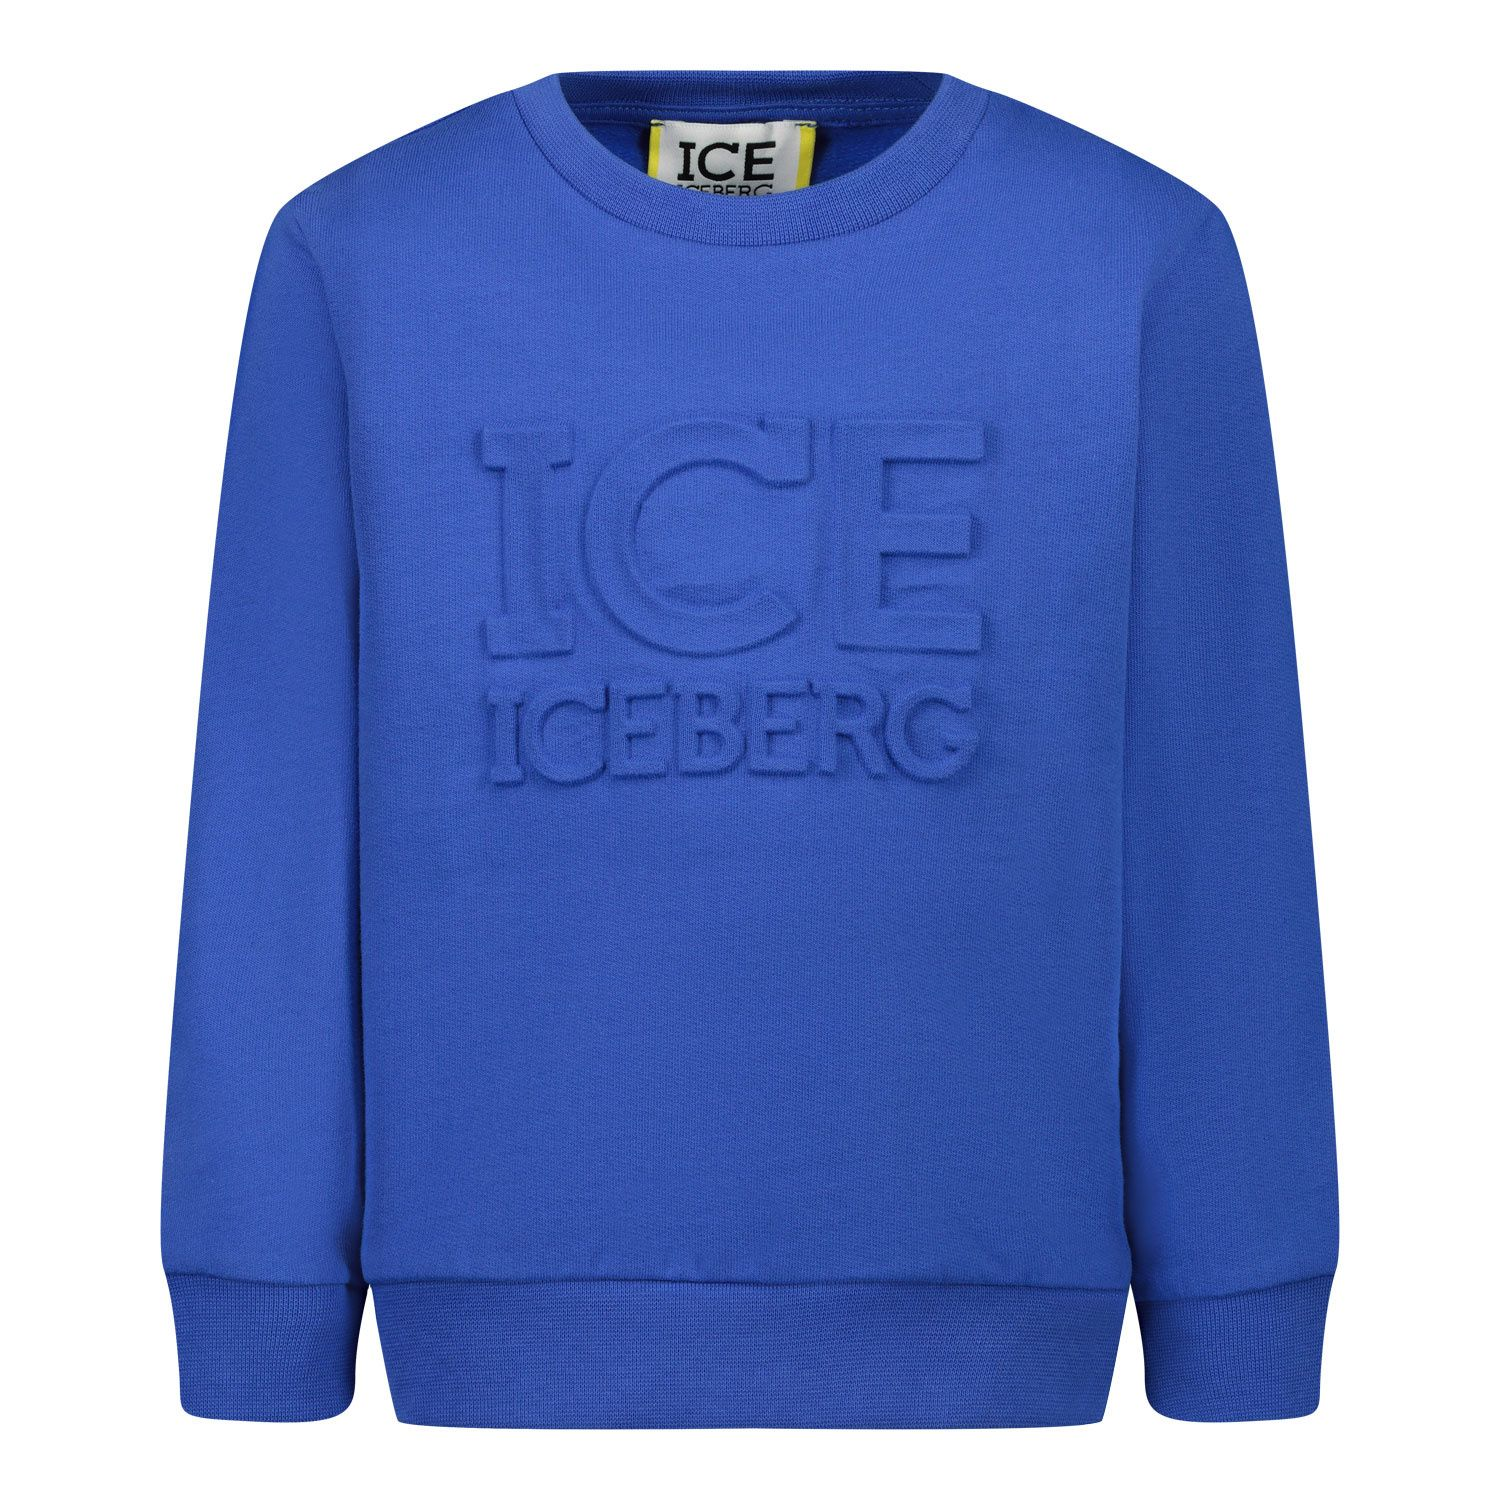 Picture of Iceberg MFICE0305B baby sweater cobalt blue